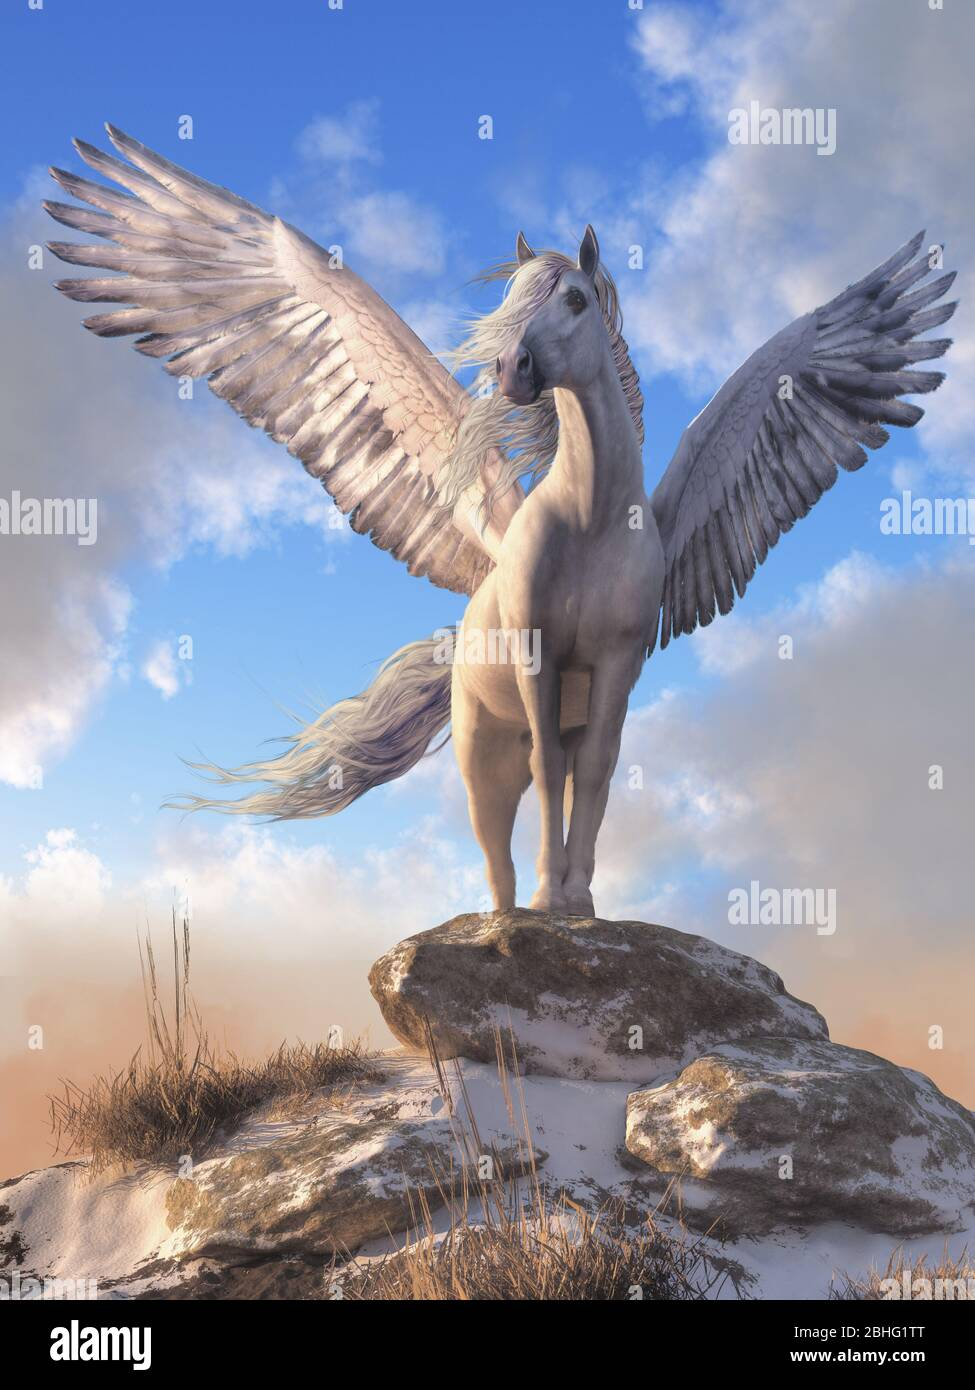 Pegasus The All White Horse With Wings From Greek Mythology Stands Atop A Rock Covered Hill Top His White Feathered Wings Spread Wide 3d Rendering Stock Photo Alamy